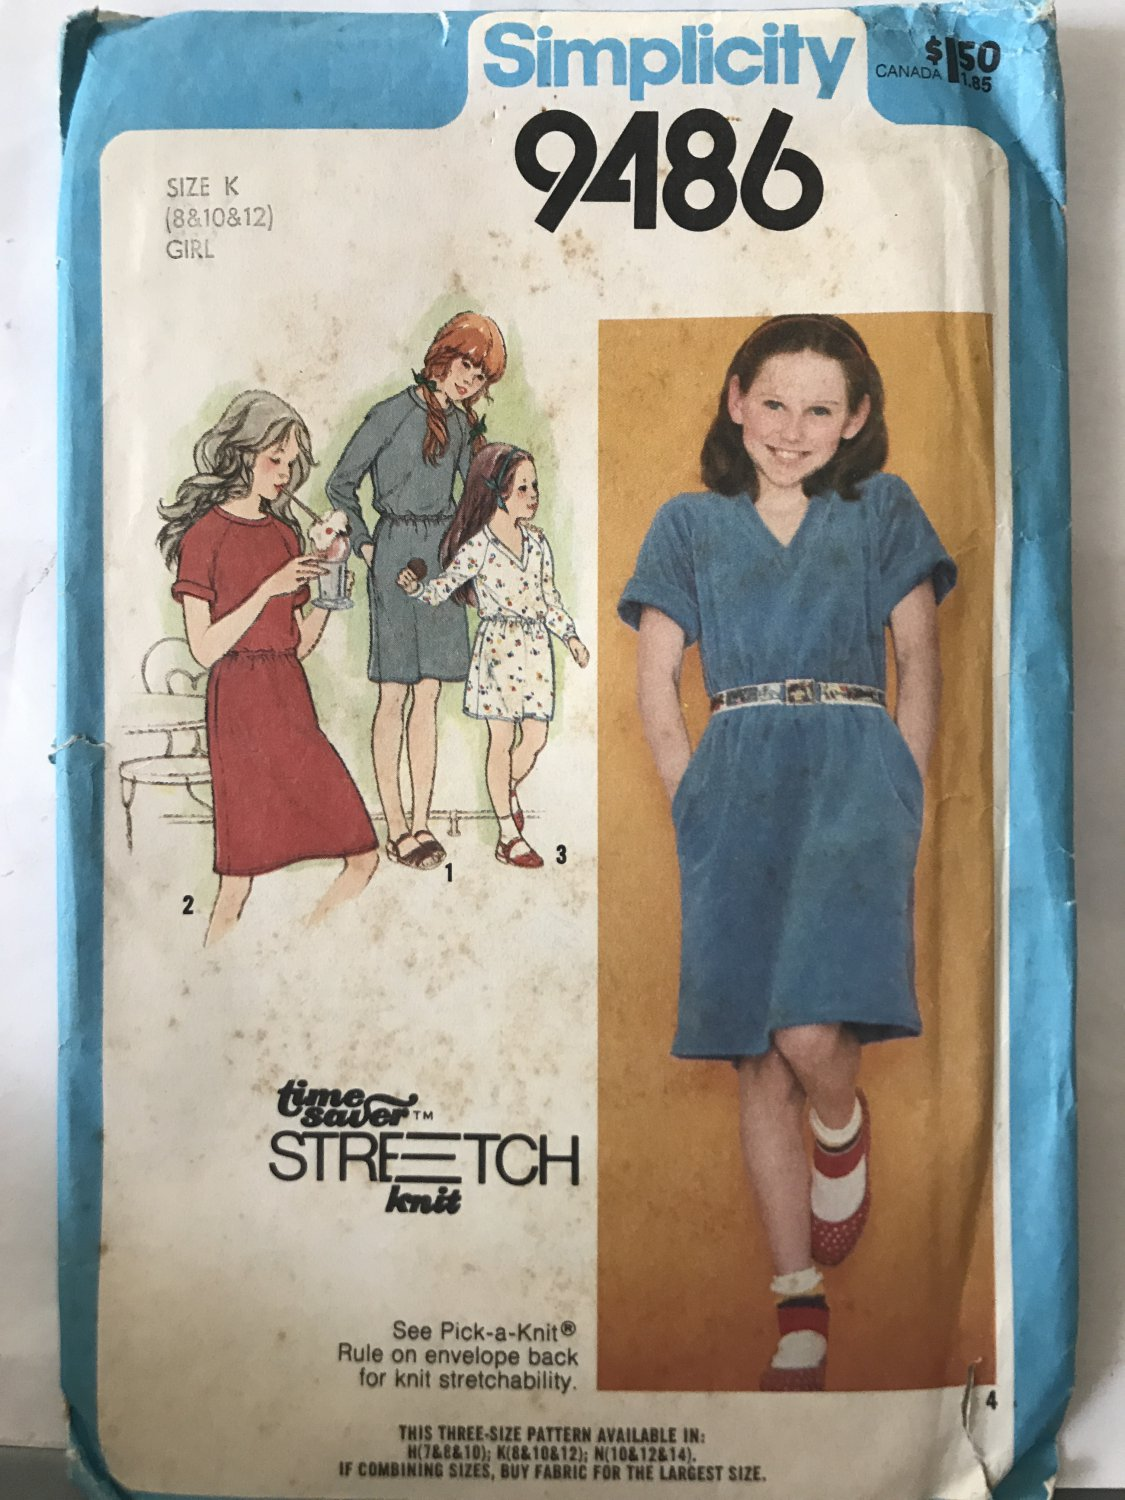 Simplicity 9486 Time Saver Stretch Child's Knit Dress sewing pattern size 8 10 12